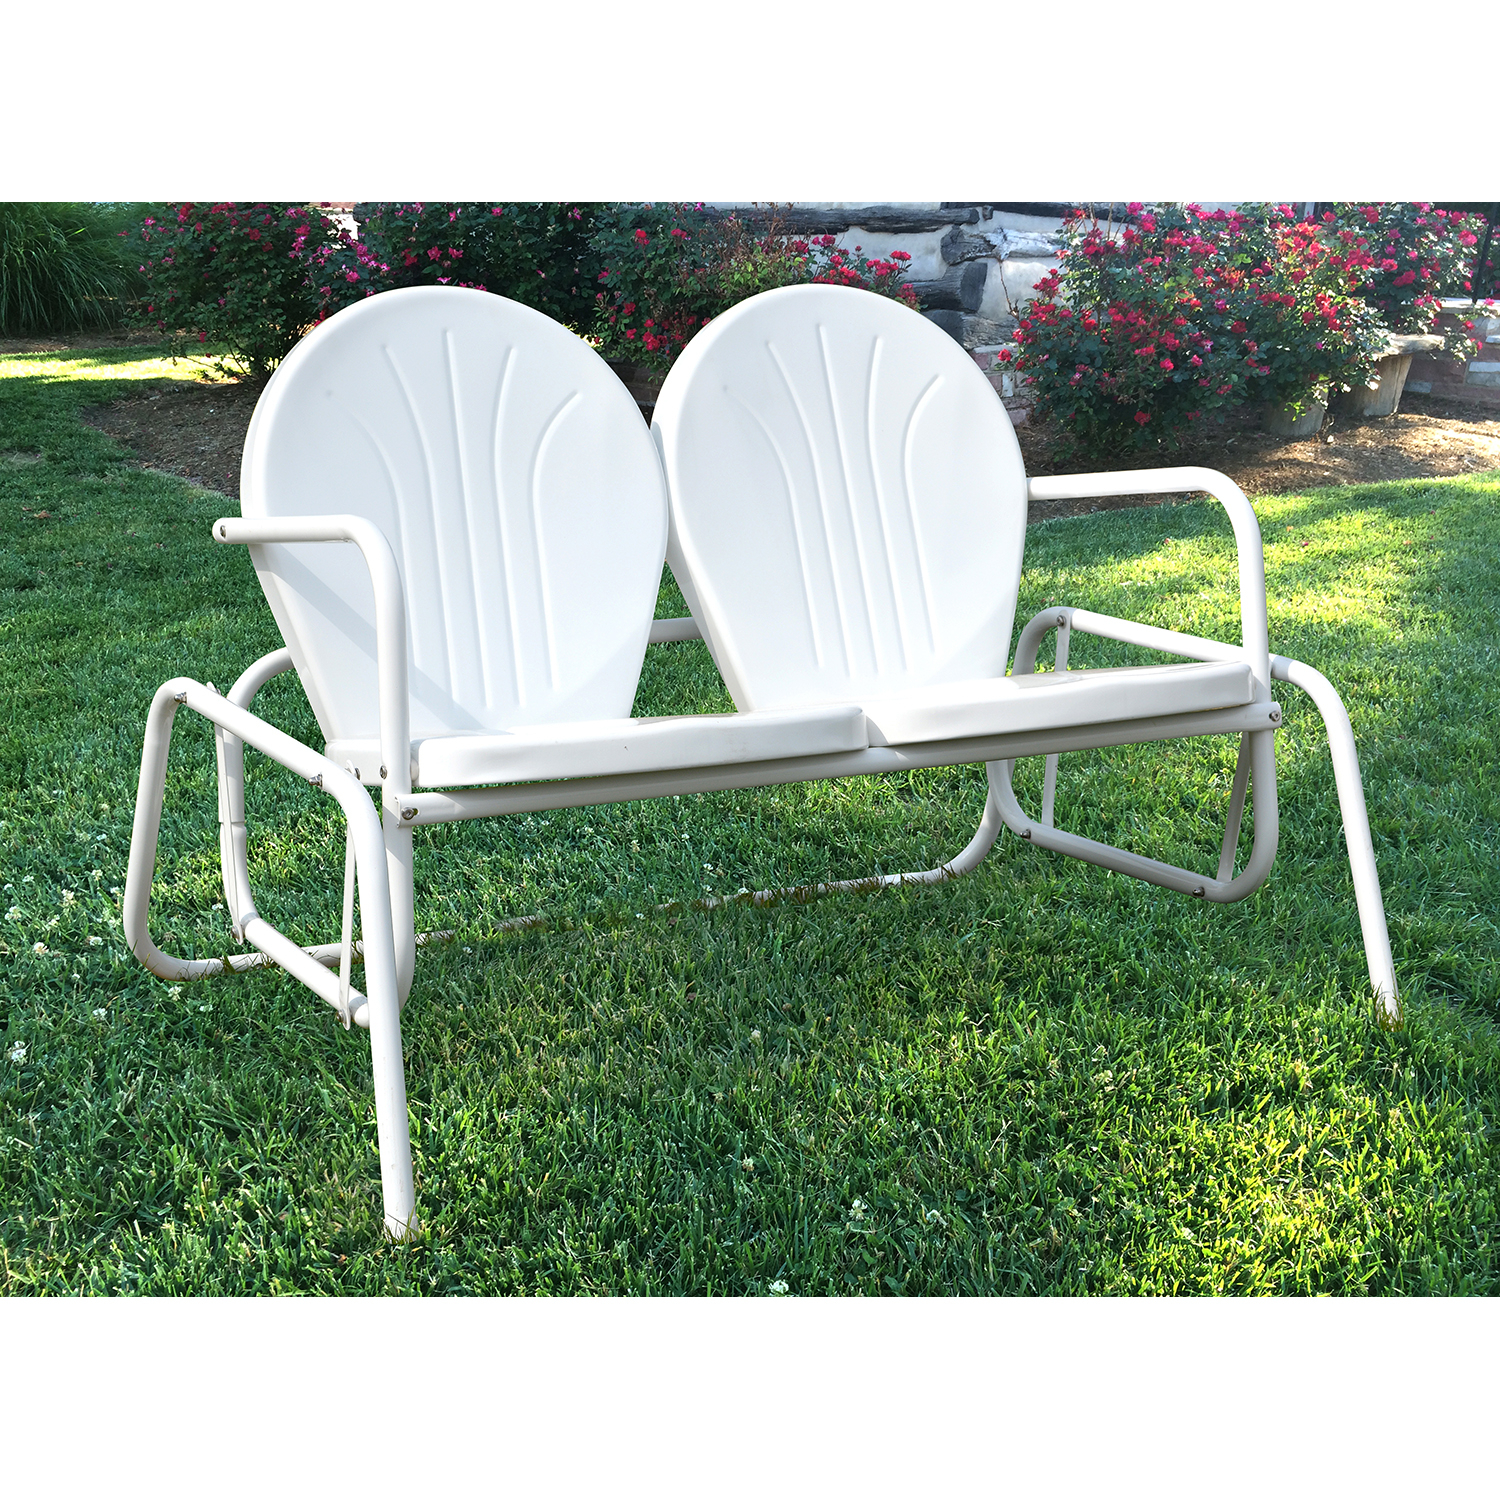 Amerihome Mcdsg Double Seat Glider With Metal Powder Coat Double Seat Glider Benches (View 10 of 25)